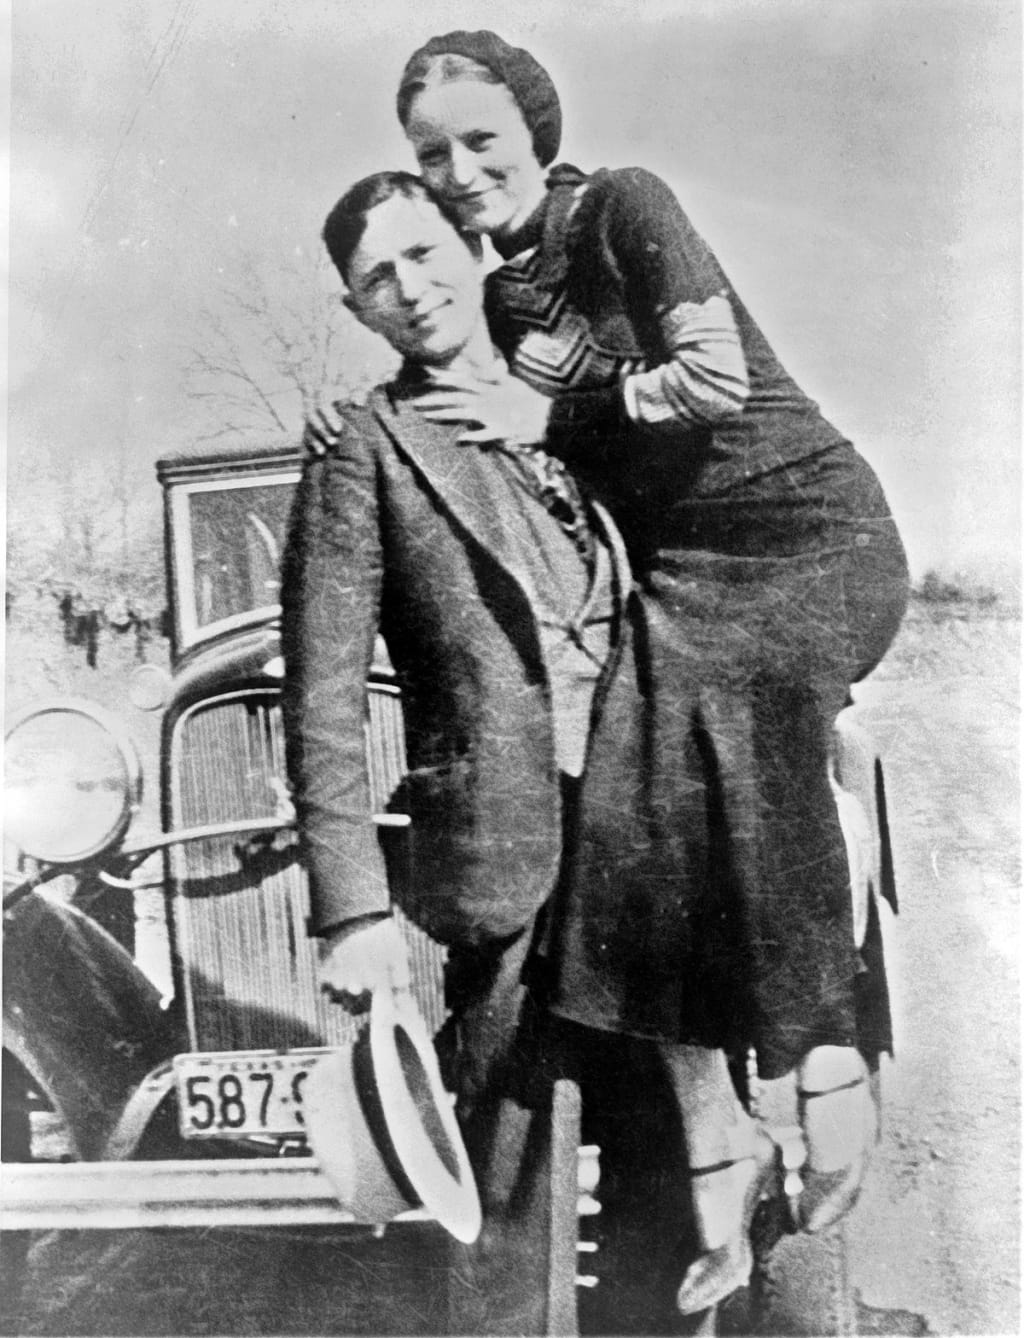 The Tragedy of Bonnie and Clyde